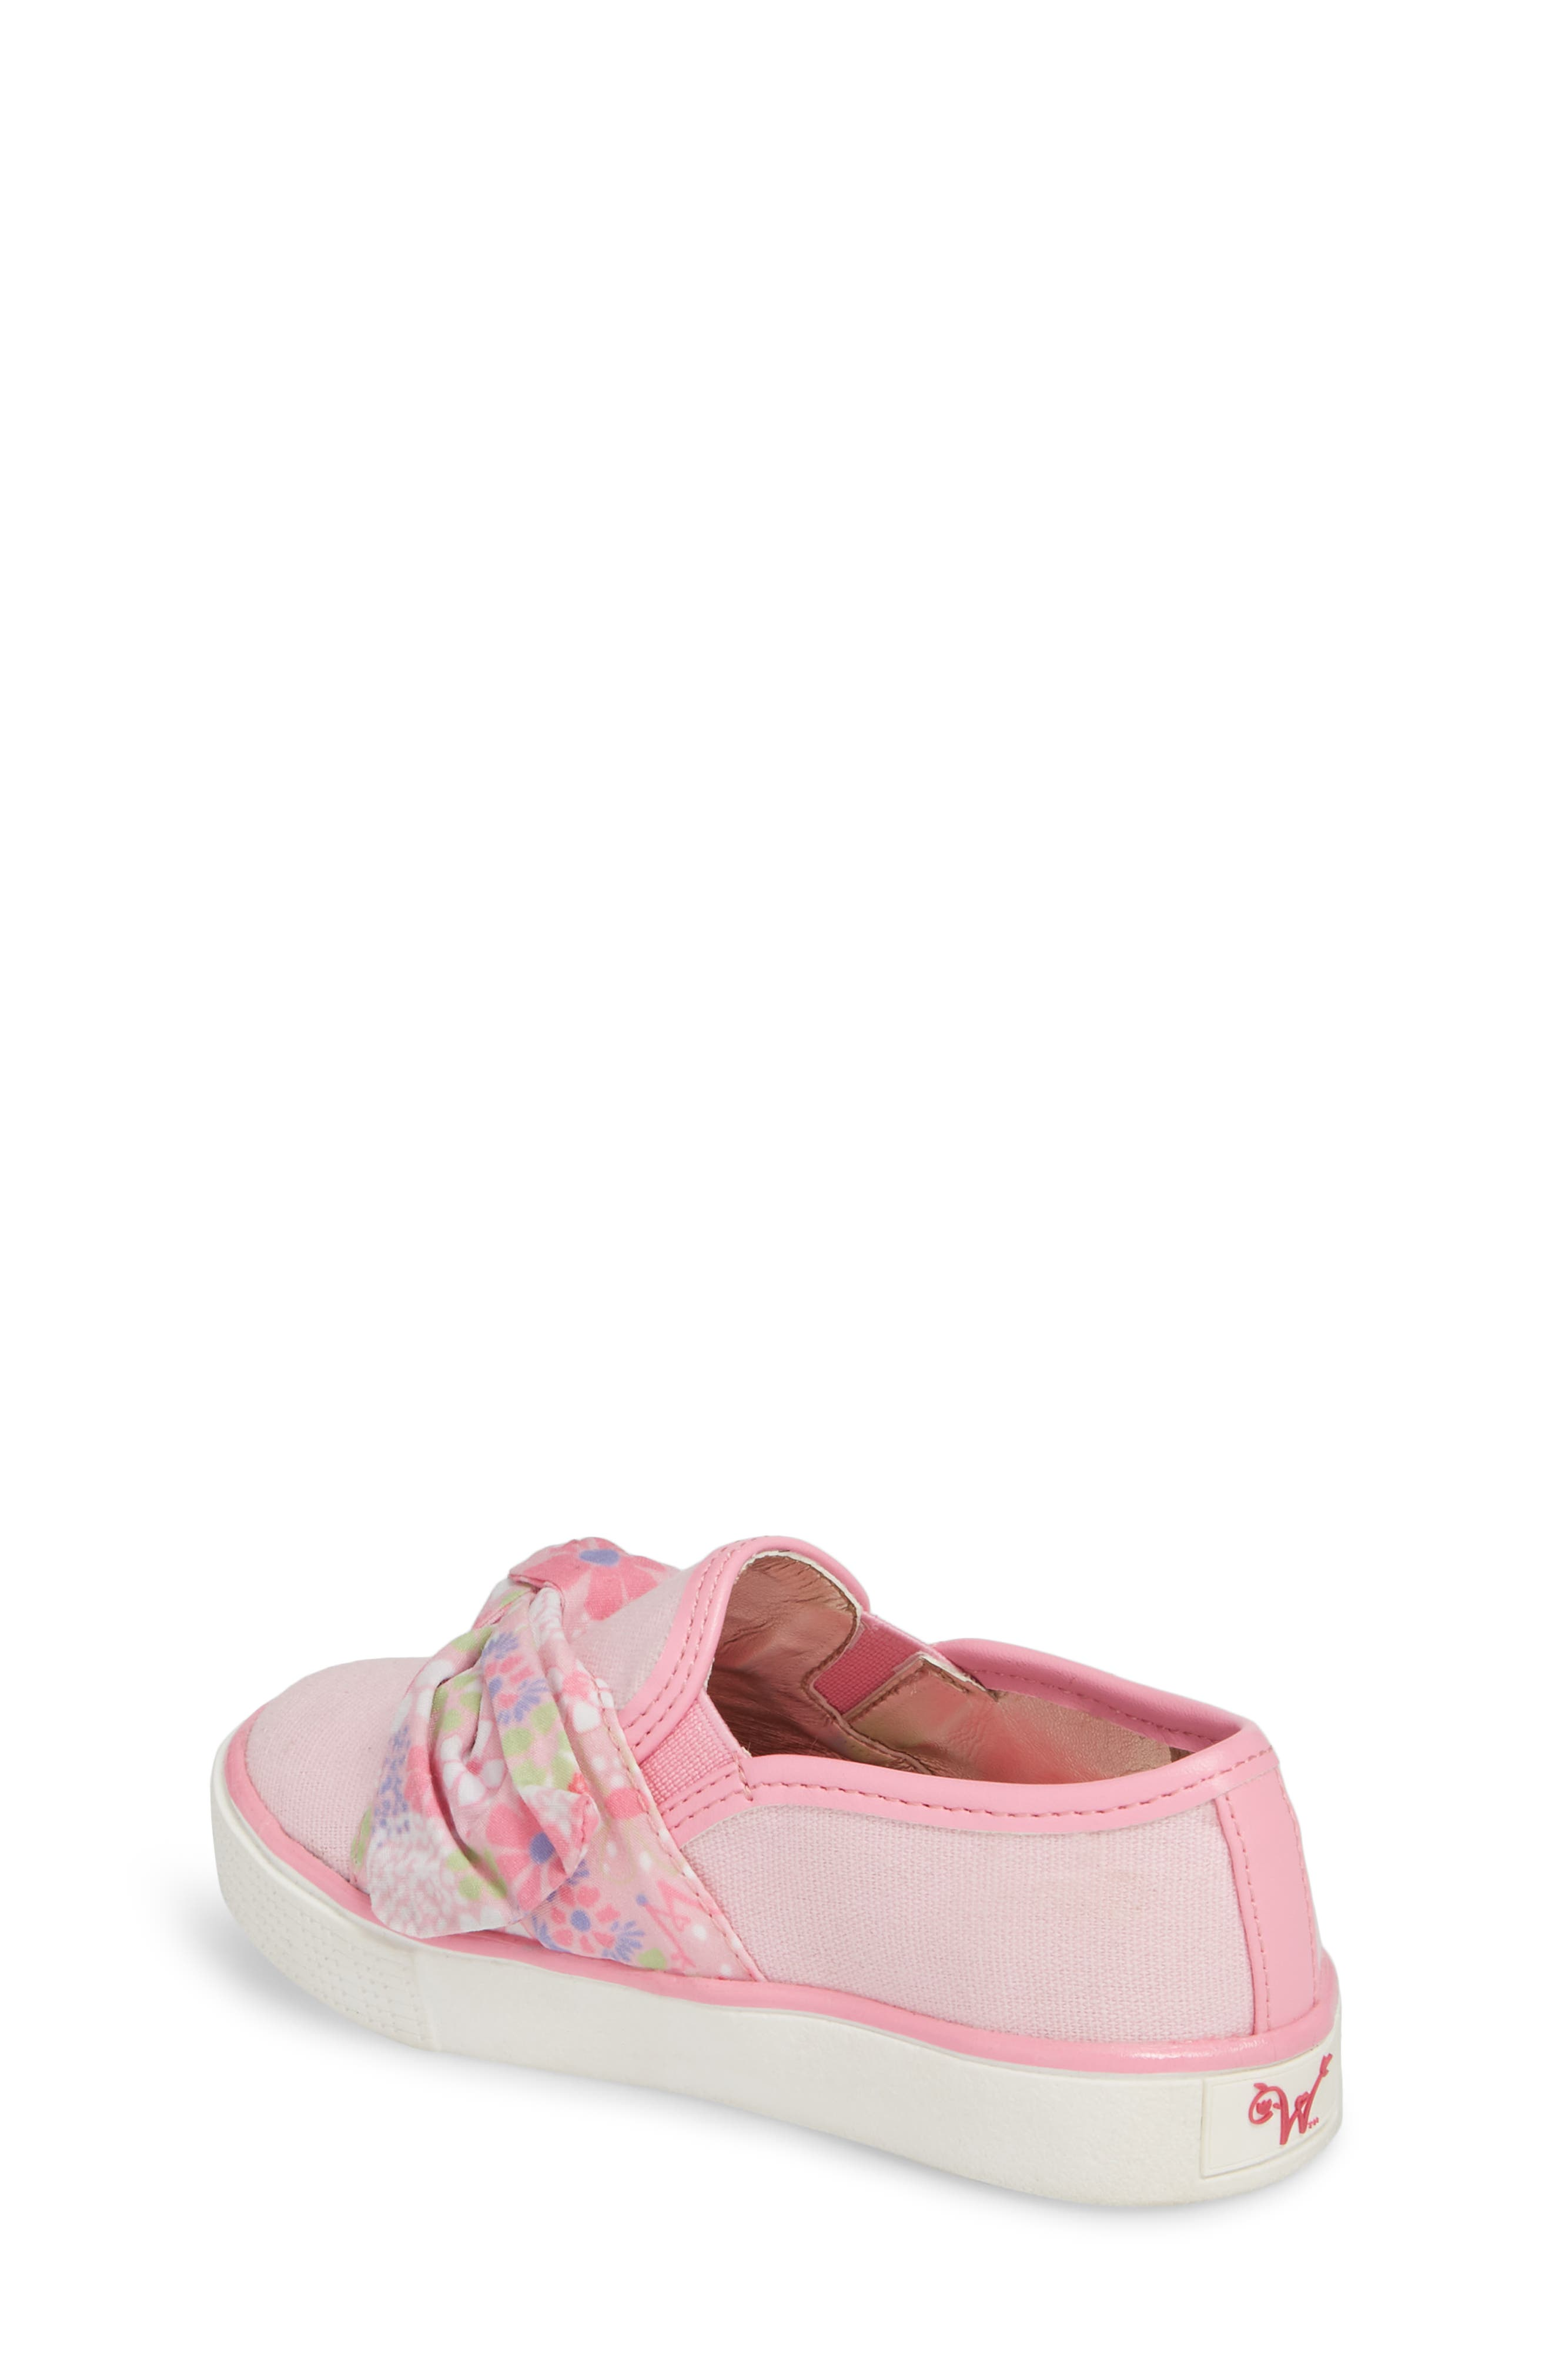 Ashlyn Bow Slip-On Sneaker,                             Alternate thumbnail 3, color,                             Orchid Pink